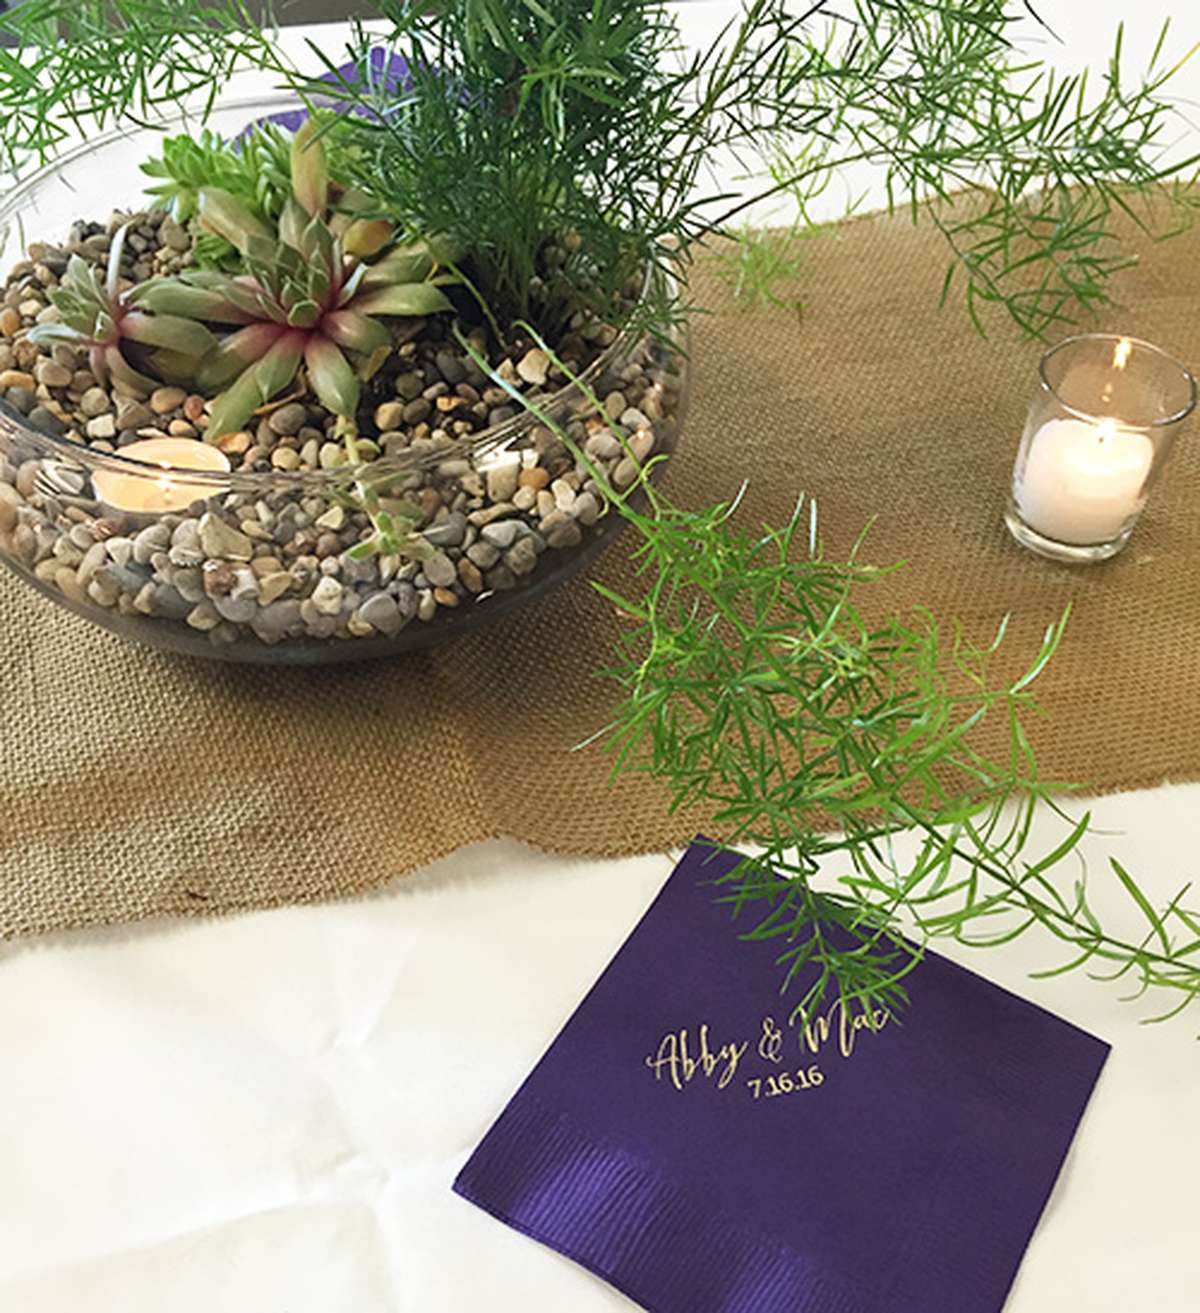 Succulent centerpieces with personalized cocktail napkin